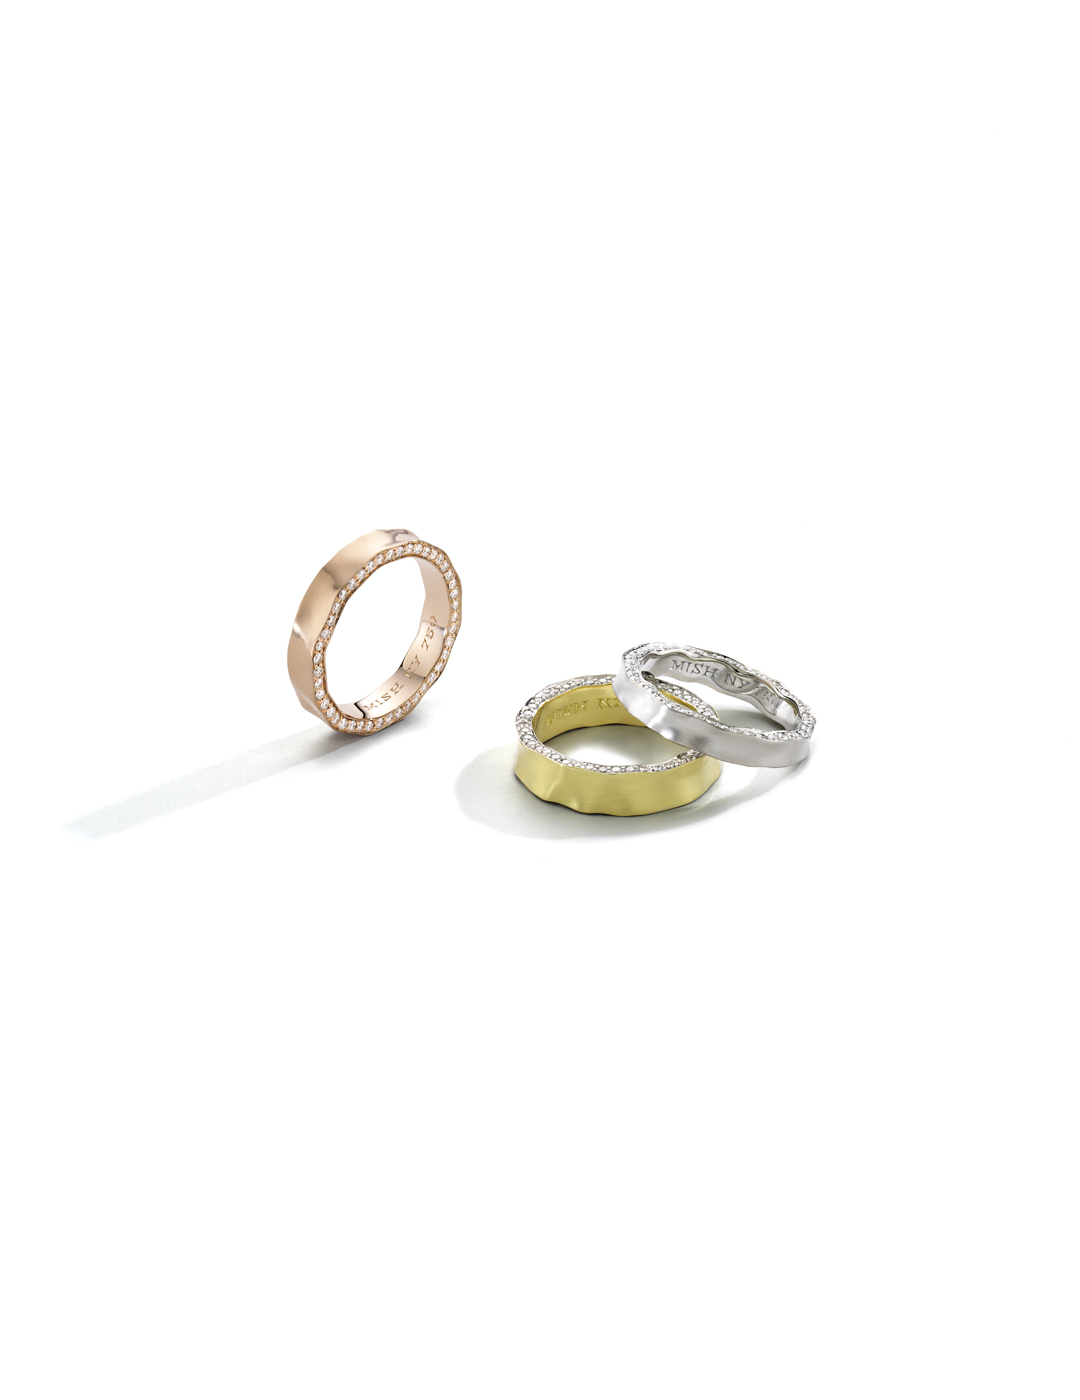 mish_products_rings_BondBow-Wide YG single-2